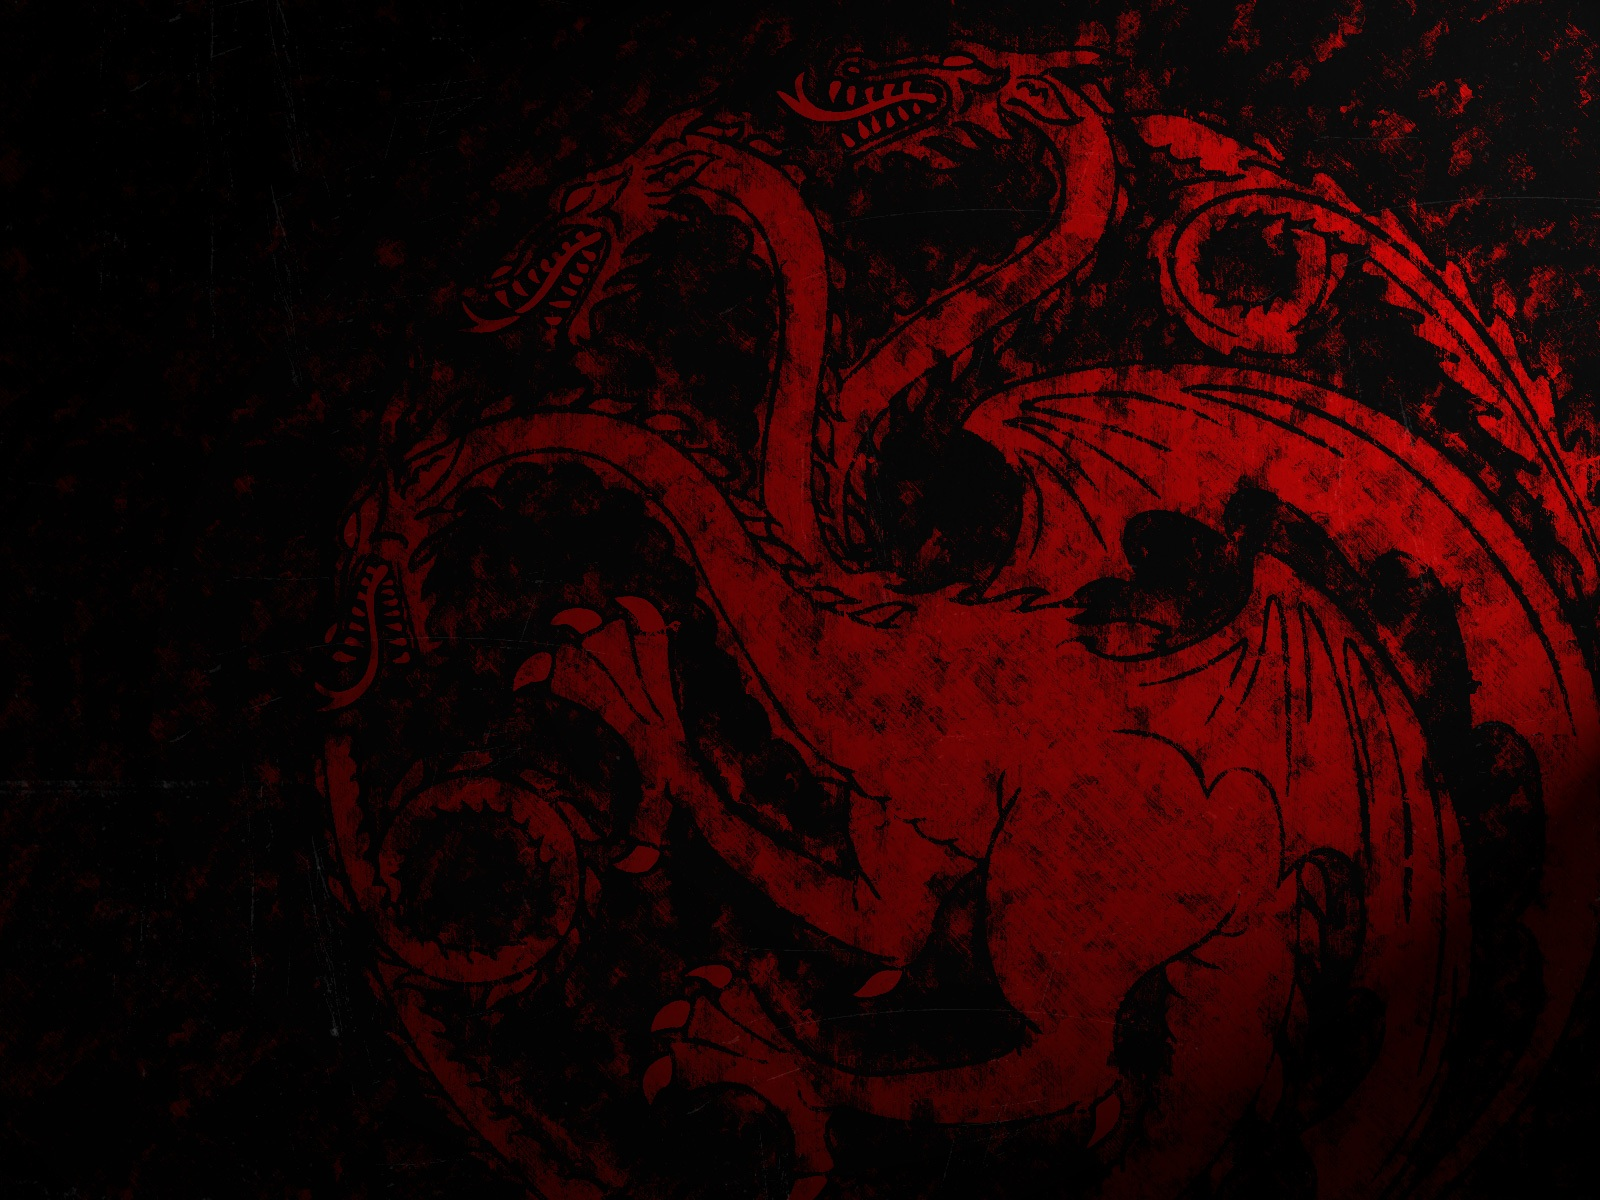 Free Download Game Of Thrones Wallpaper Targaryen 1600x1200 For